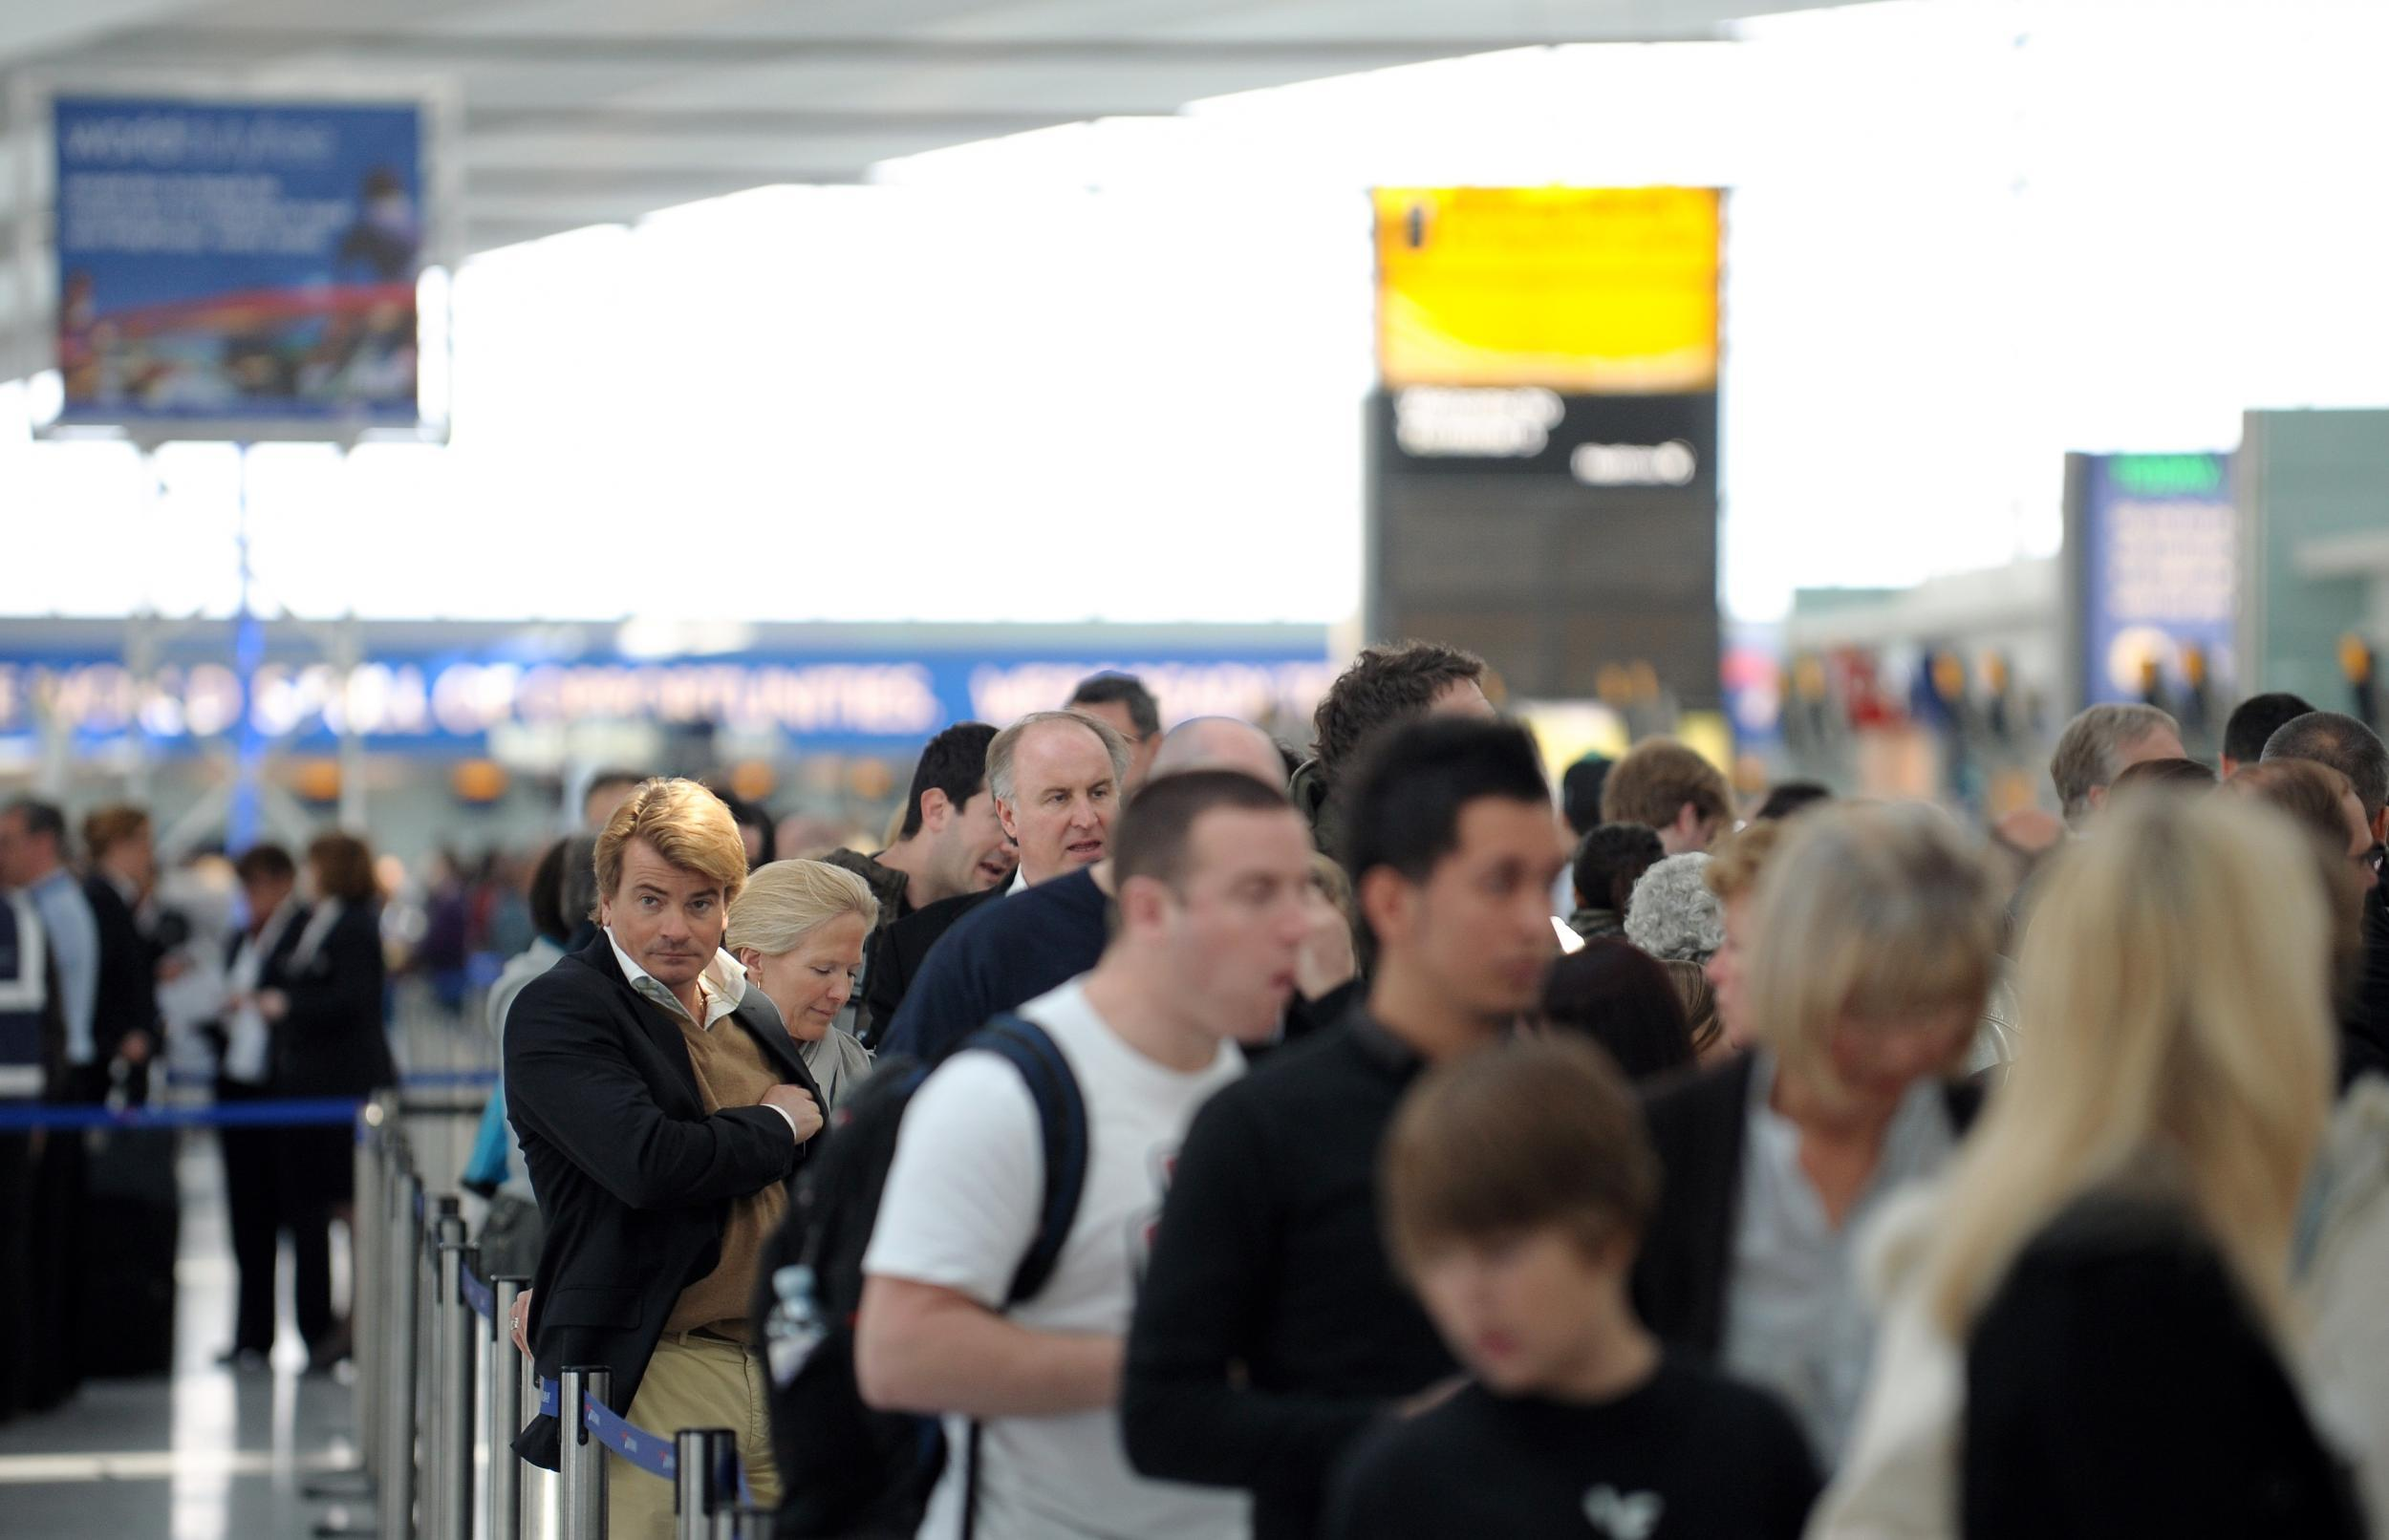 travel news advice flight times getting shorter longer journeys slow aircraft time airlines quick ro